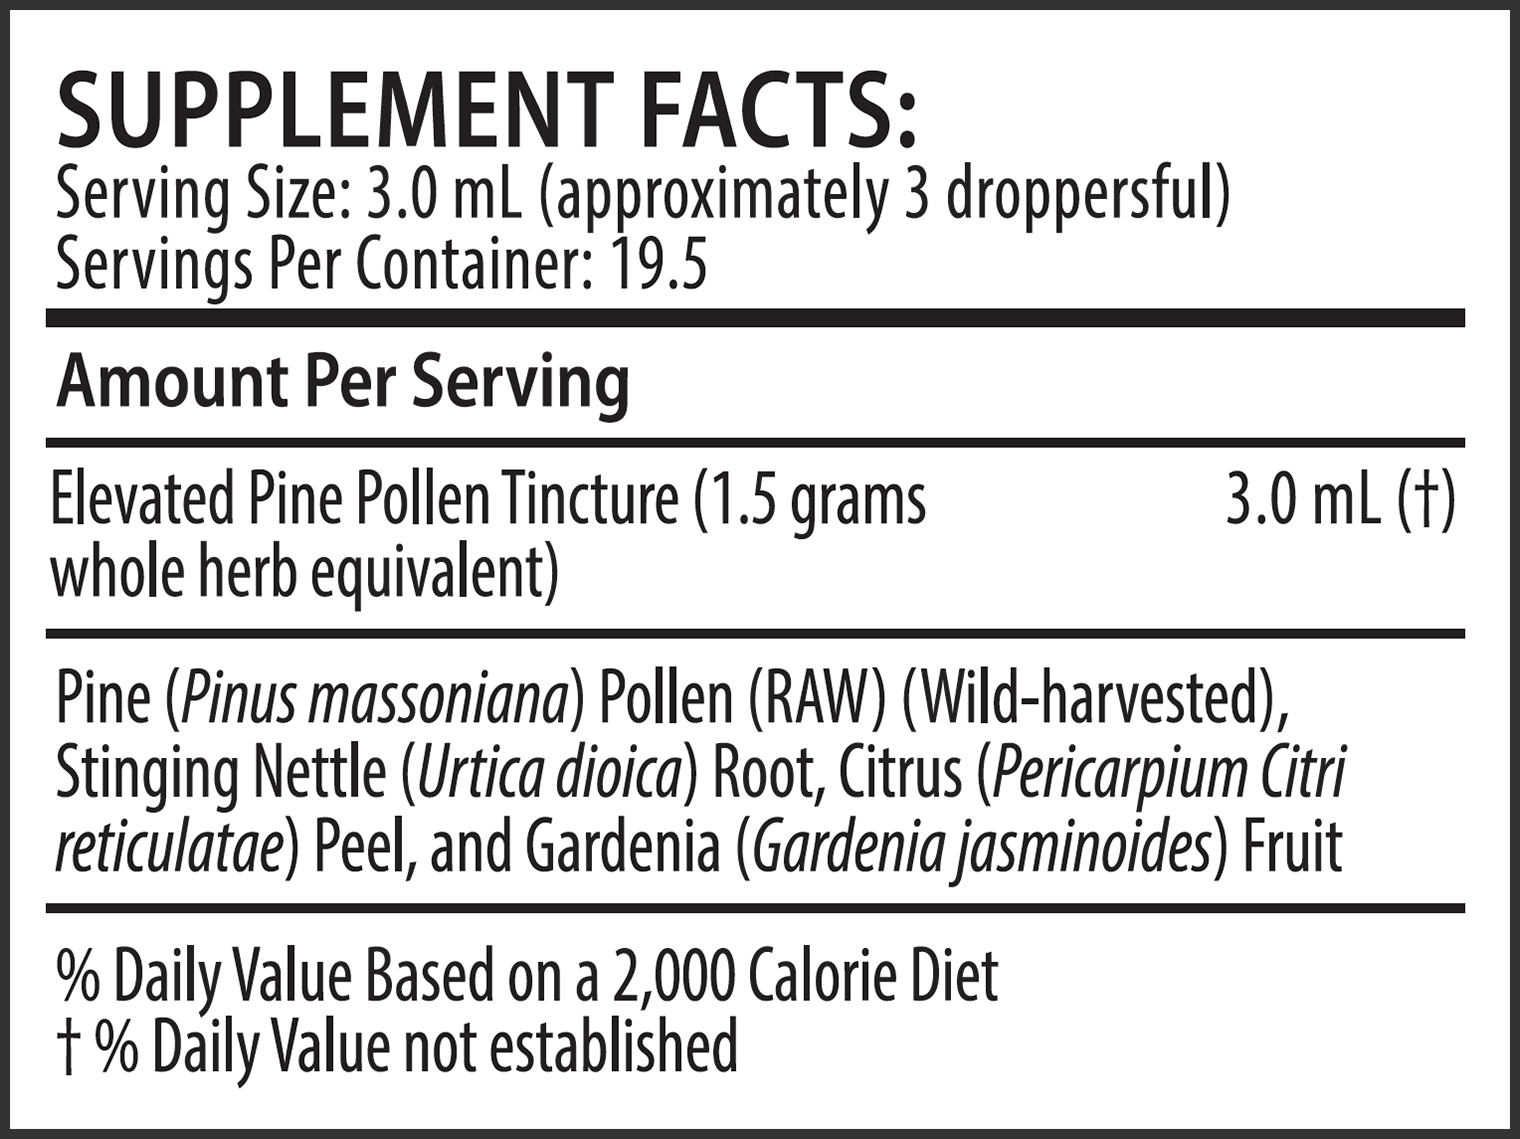 Elevated Pine Pollen Tincture (With Nettle Root and Chen Pi) Supplement Facts